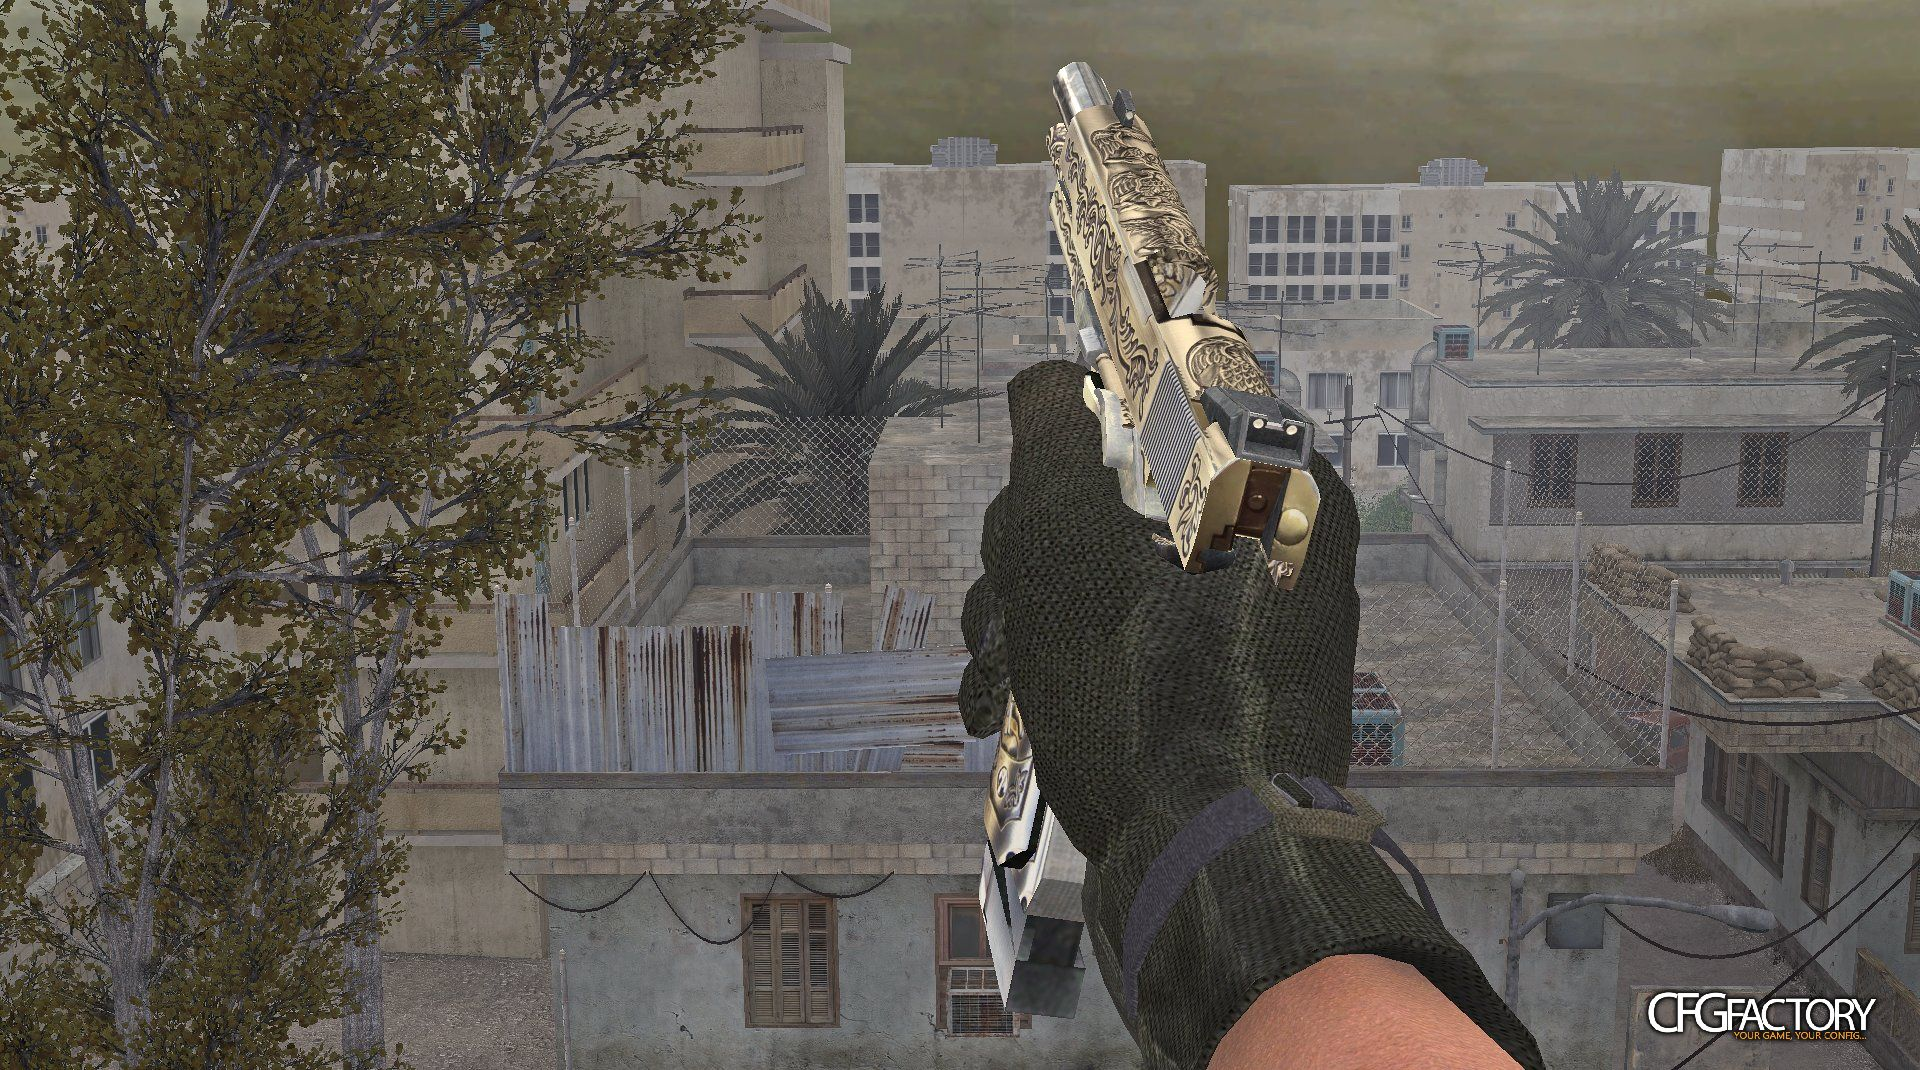 cod4, m1911, hd floral m1911 [not fixing/finishing], ryk / me